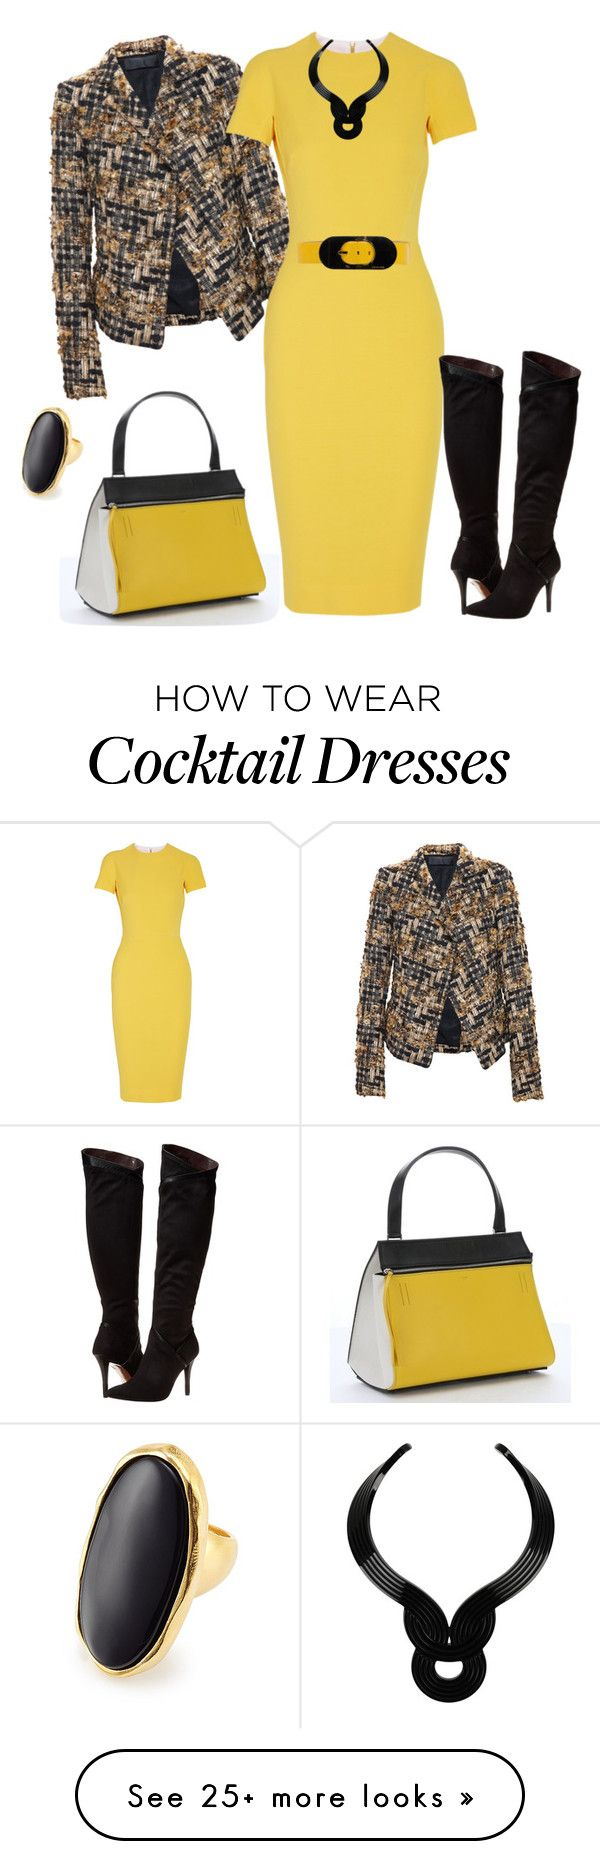 """outfit 2650"" by natalyag on Polyvore featuring Haider Ackermann, CÉLINE, Victoria Beckham, Report, Lara Bohinc, Michael Kors and Kenneth Jay Lane"